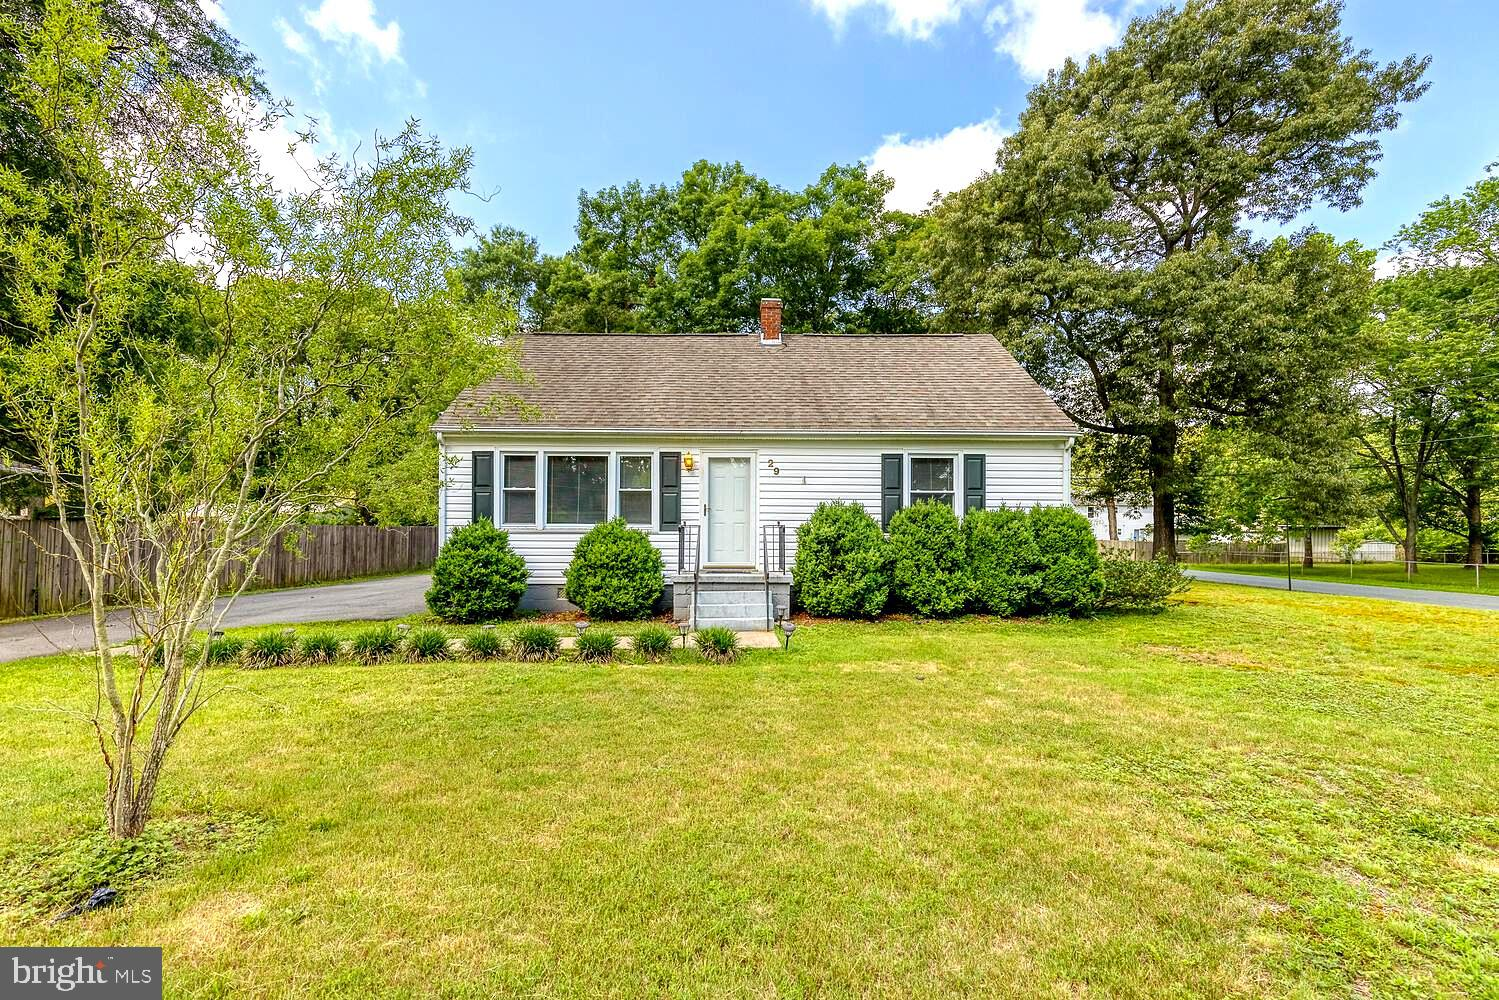 Adorable home with a BEAUTIFUL backyard setting! Excellent location which is walking distance to Fer